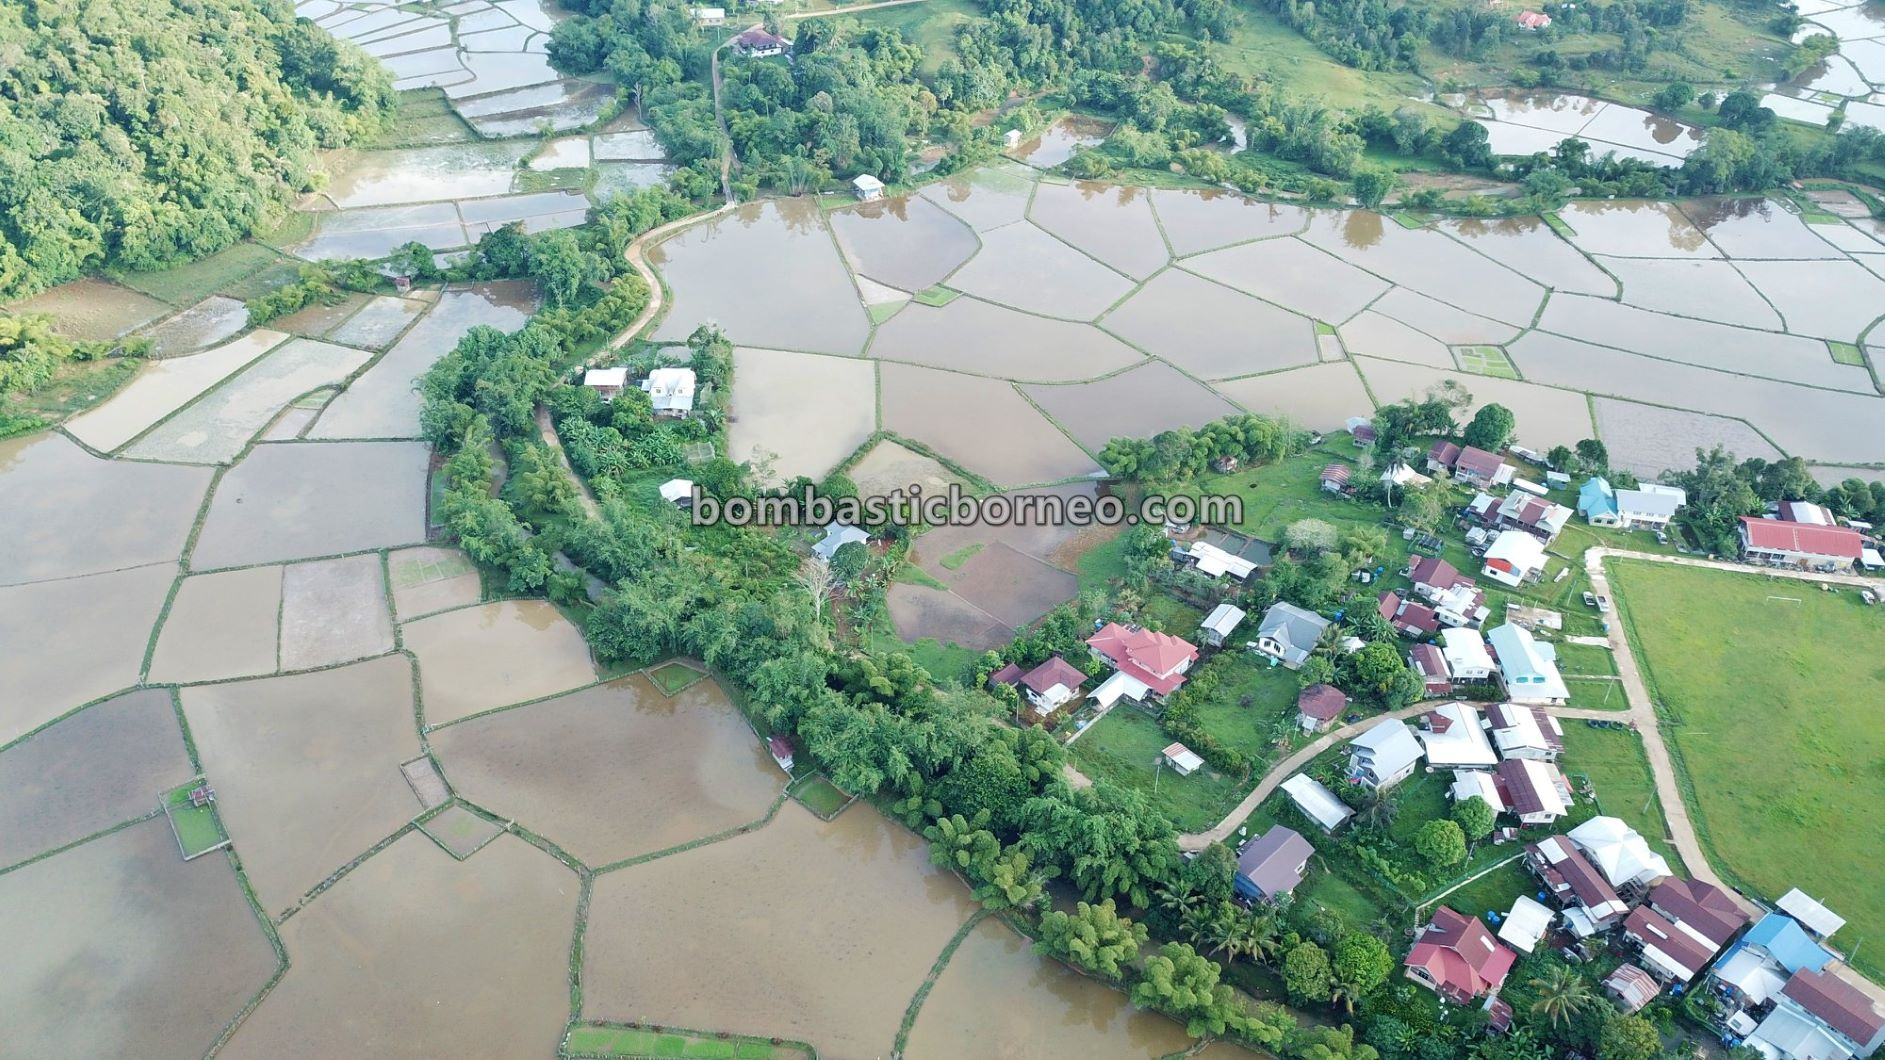 traditional, paddy fields, homestay Matius, backpackers, Interior, Maligan Highlands, Malaysia, Orang Ulu, Tribe, Tourism, Trans Border, Borneo, 跨境婆罗洲游踪, 马来西亚内陆高原, 砂拉越巴卡拉兰,